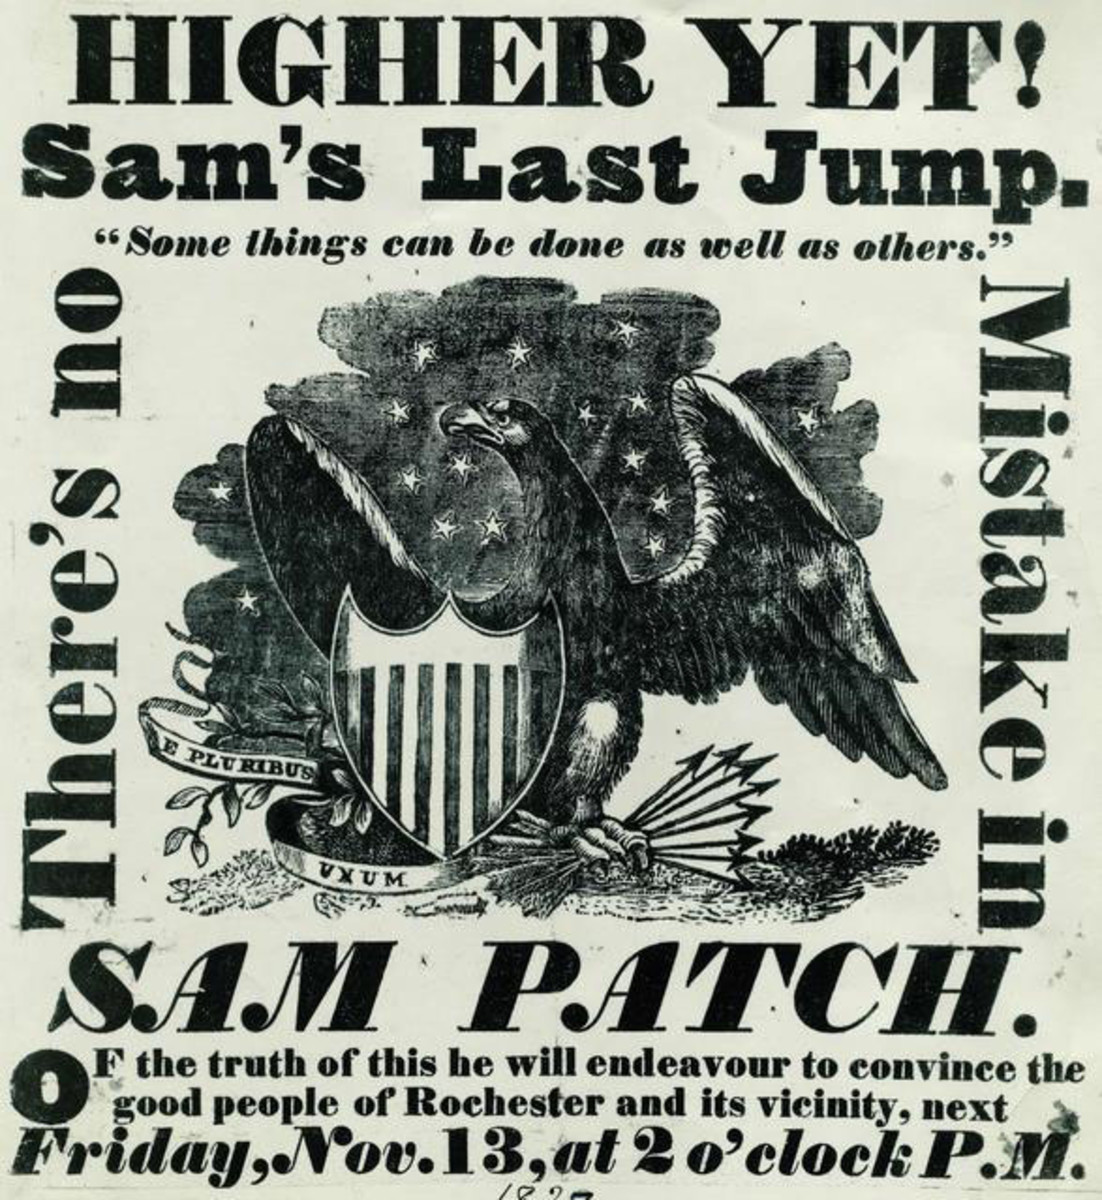 Handbill for Sam Patch's second jump at the Upper Falls of the Genesee River.